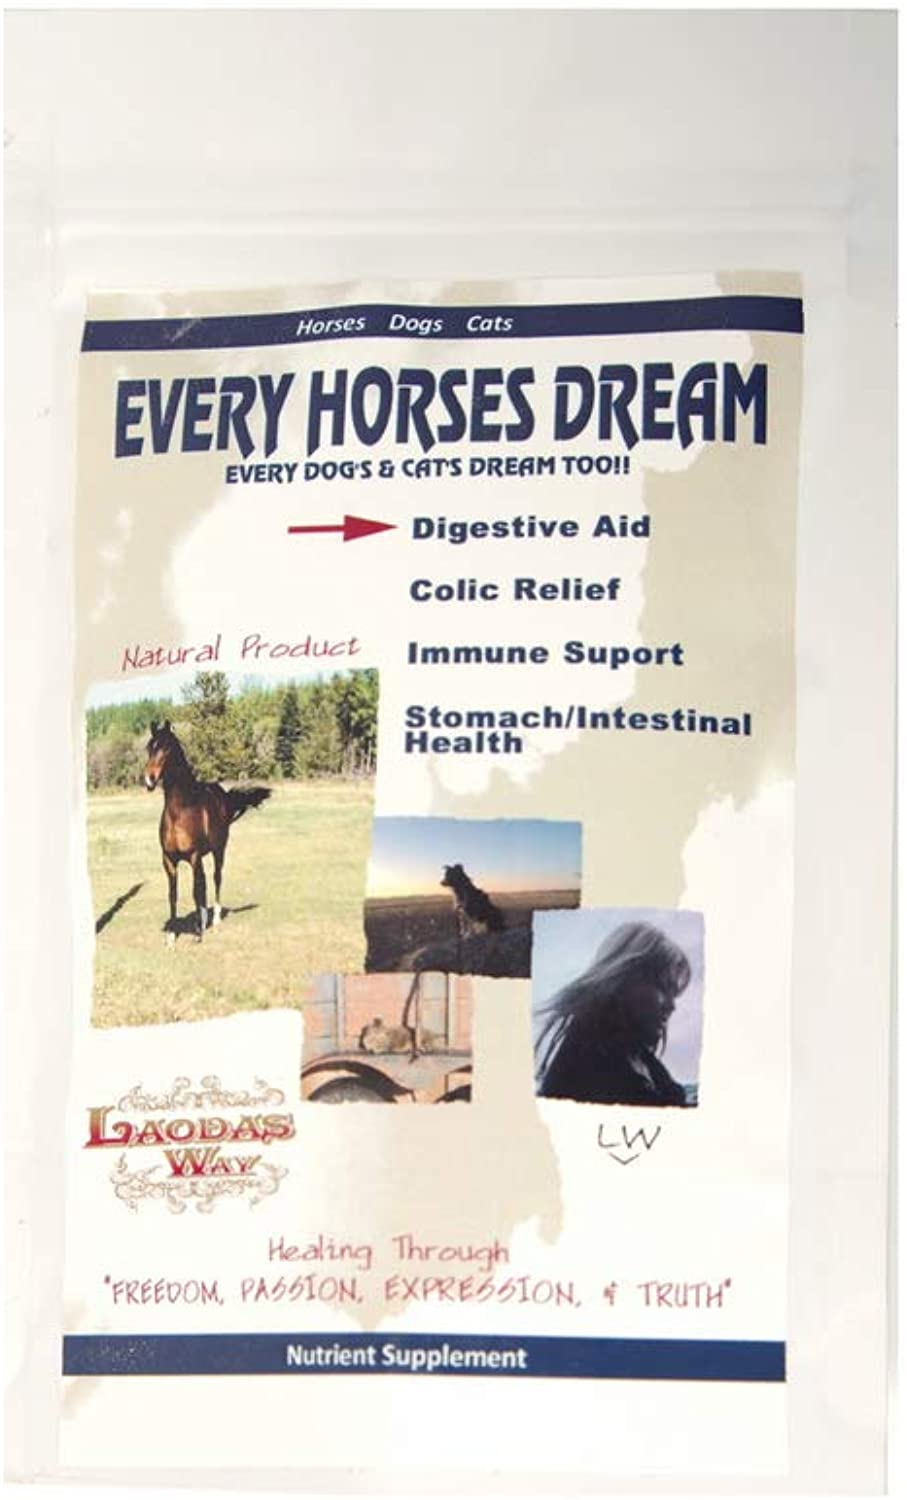 Every Horses Dream Every Dog's and Cat's Dream Too